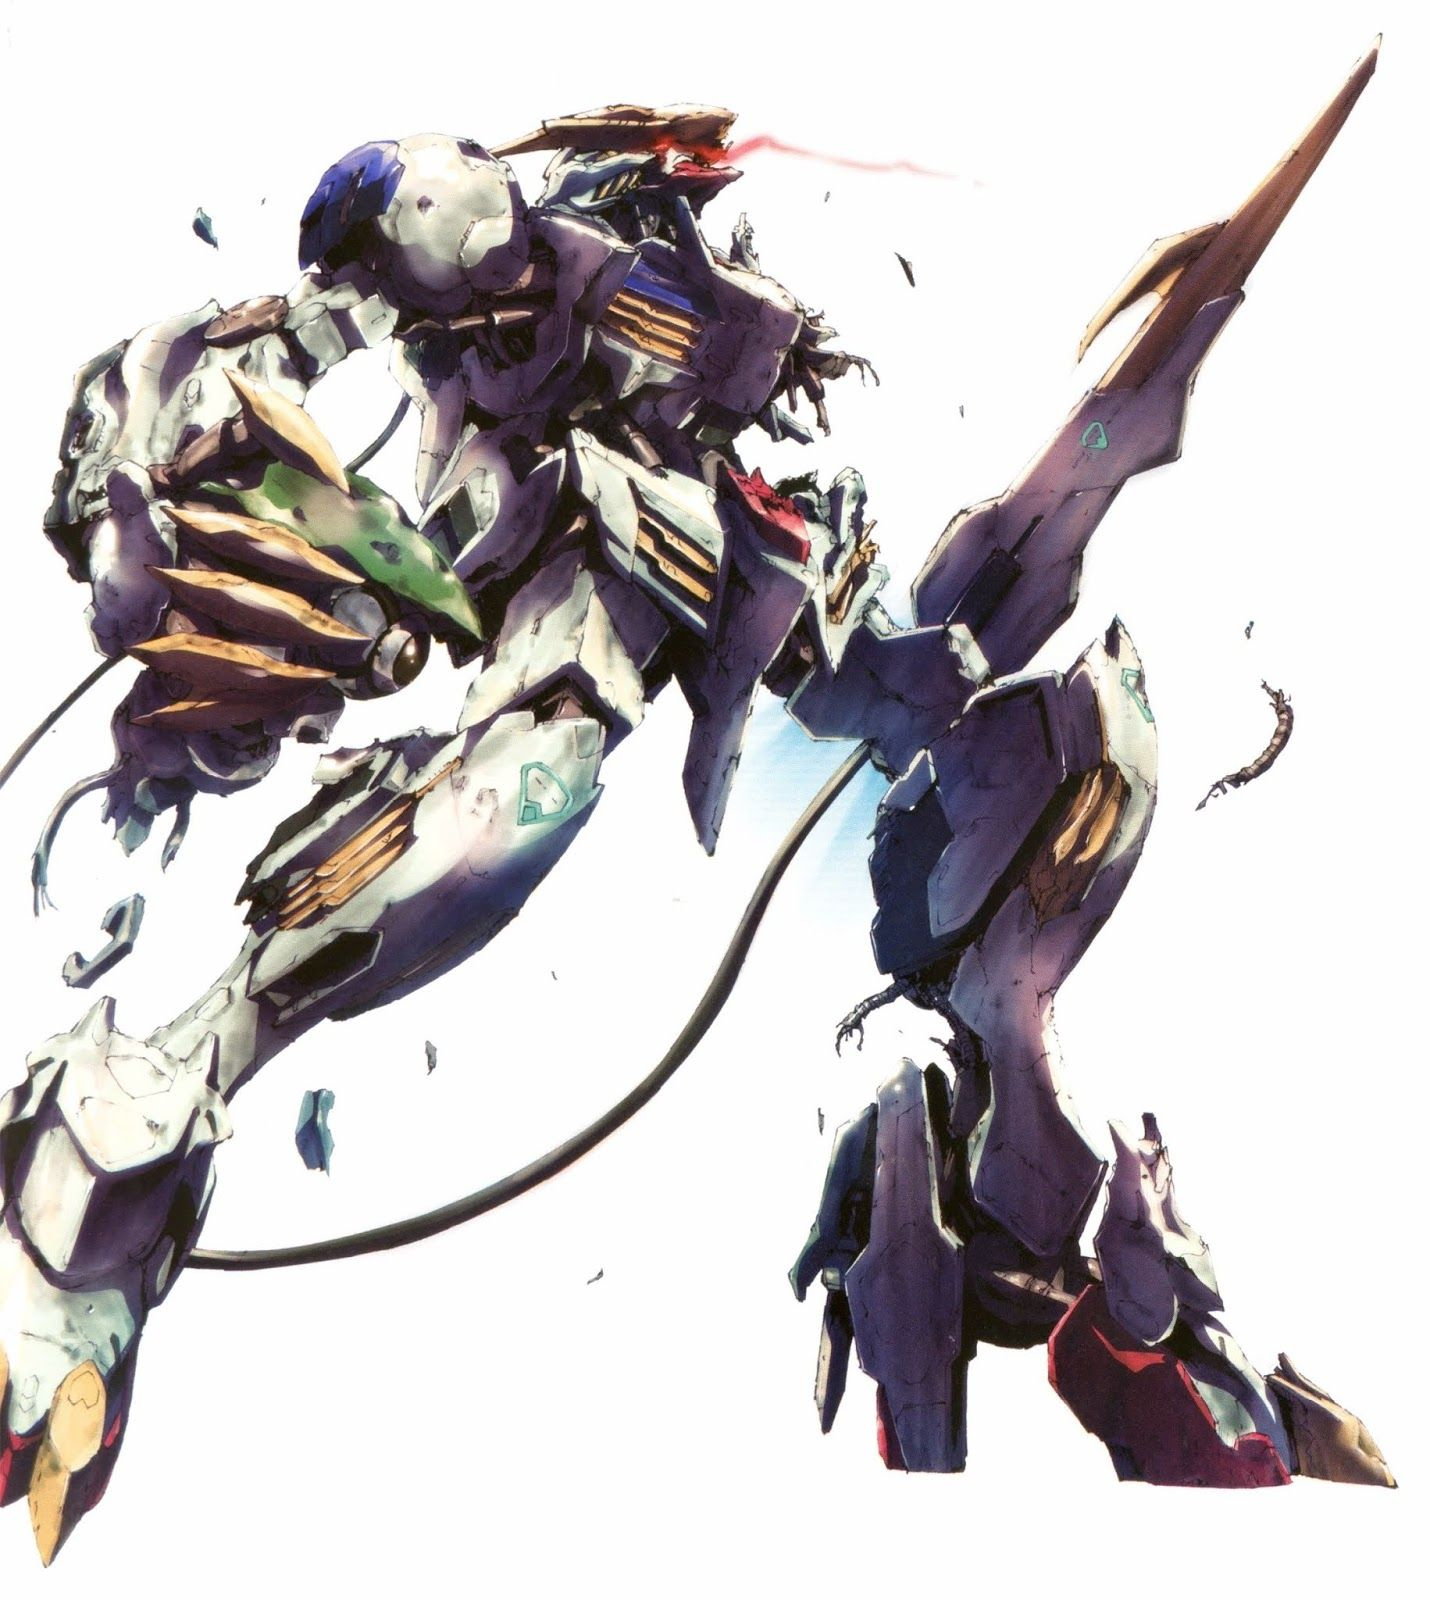 Some Iron Blooded Orphans Wallpaper Images Gundam Gundam Iron